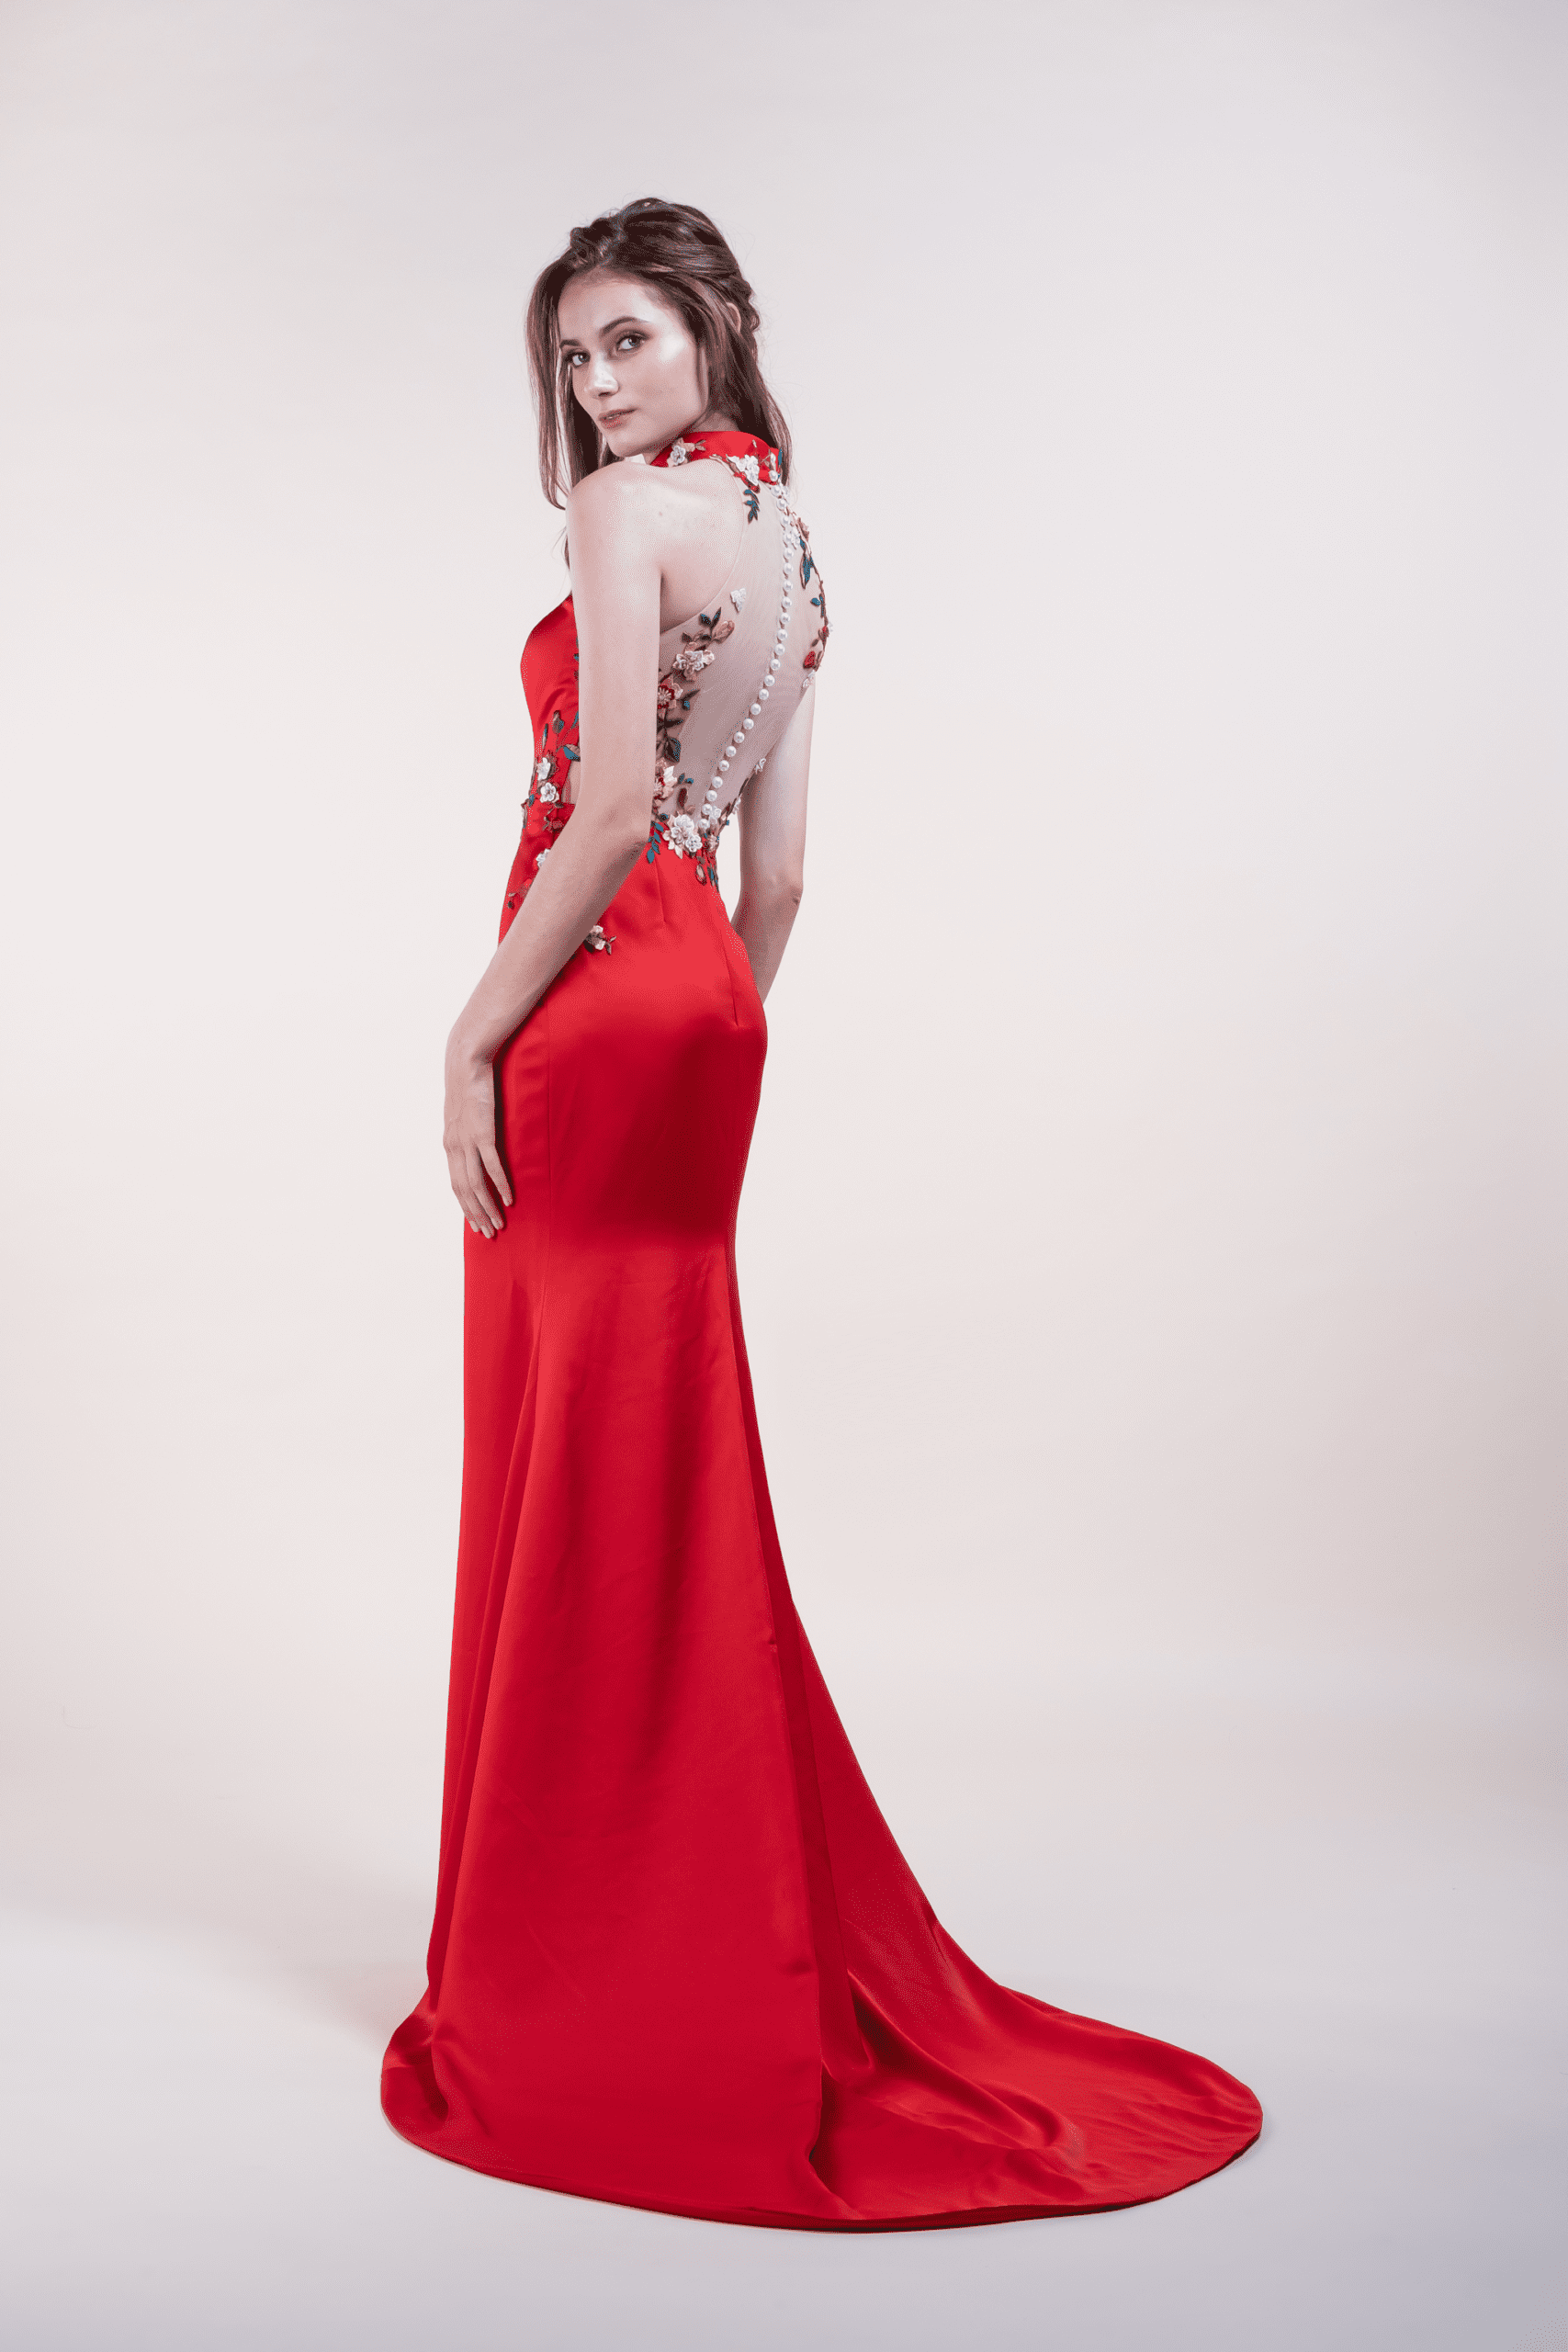 Kei-affordable-Modern-Cheongsam-for-rent-in-Singapore